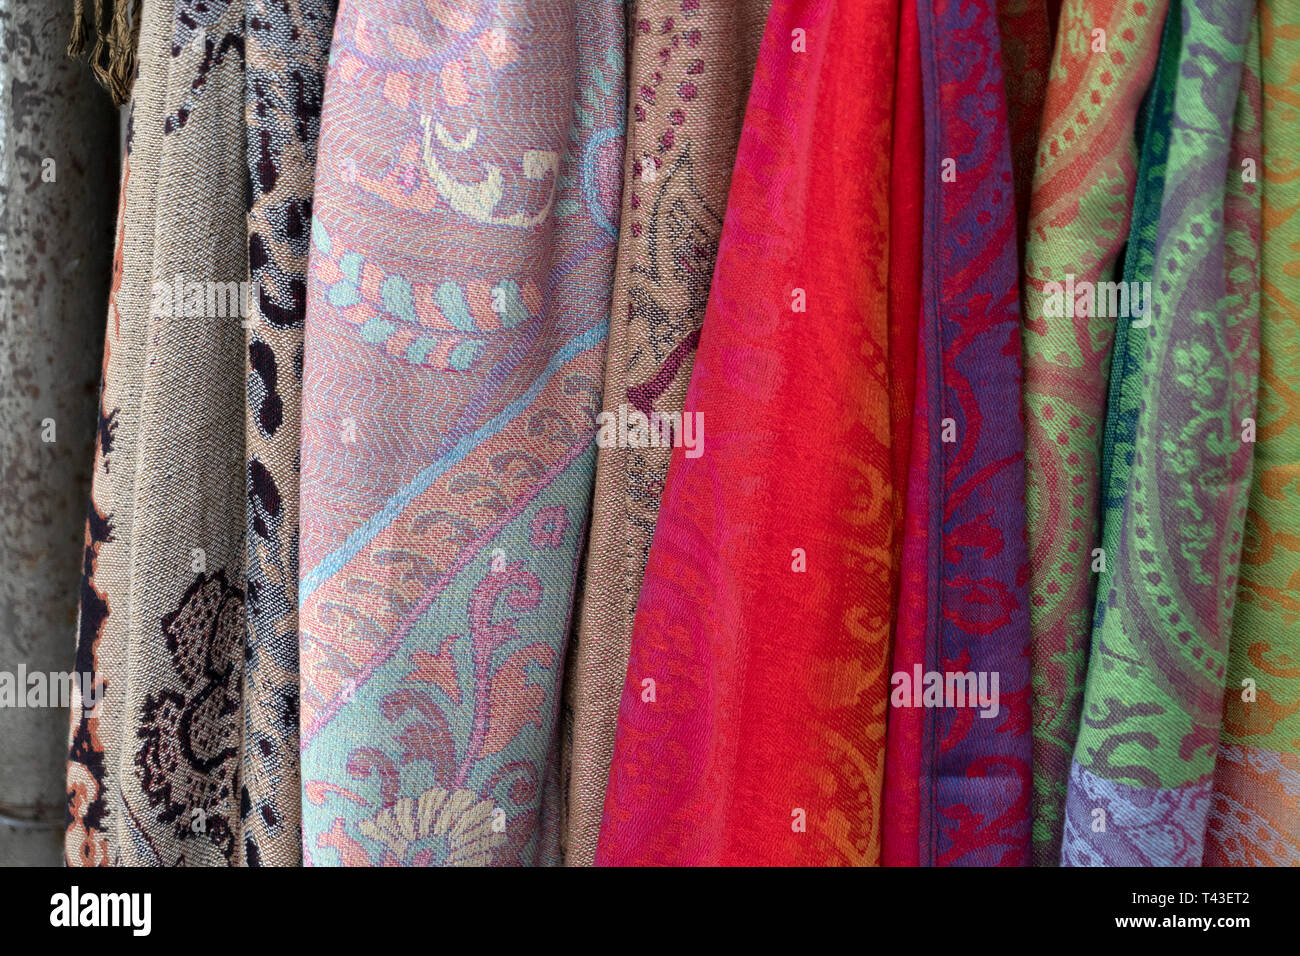 a8b355a8ac3 Indian Clothes Sale In Shop Stock Photos   Indian Clothes Sale In ...